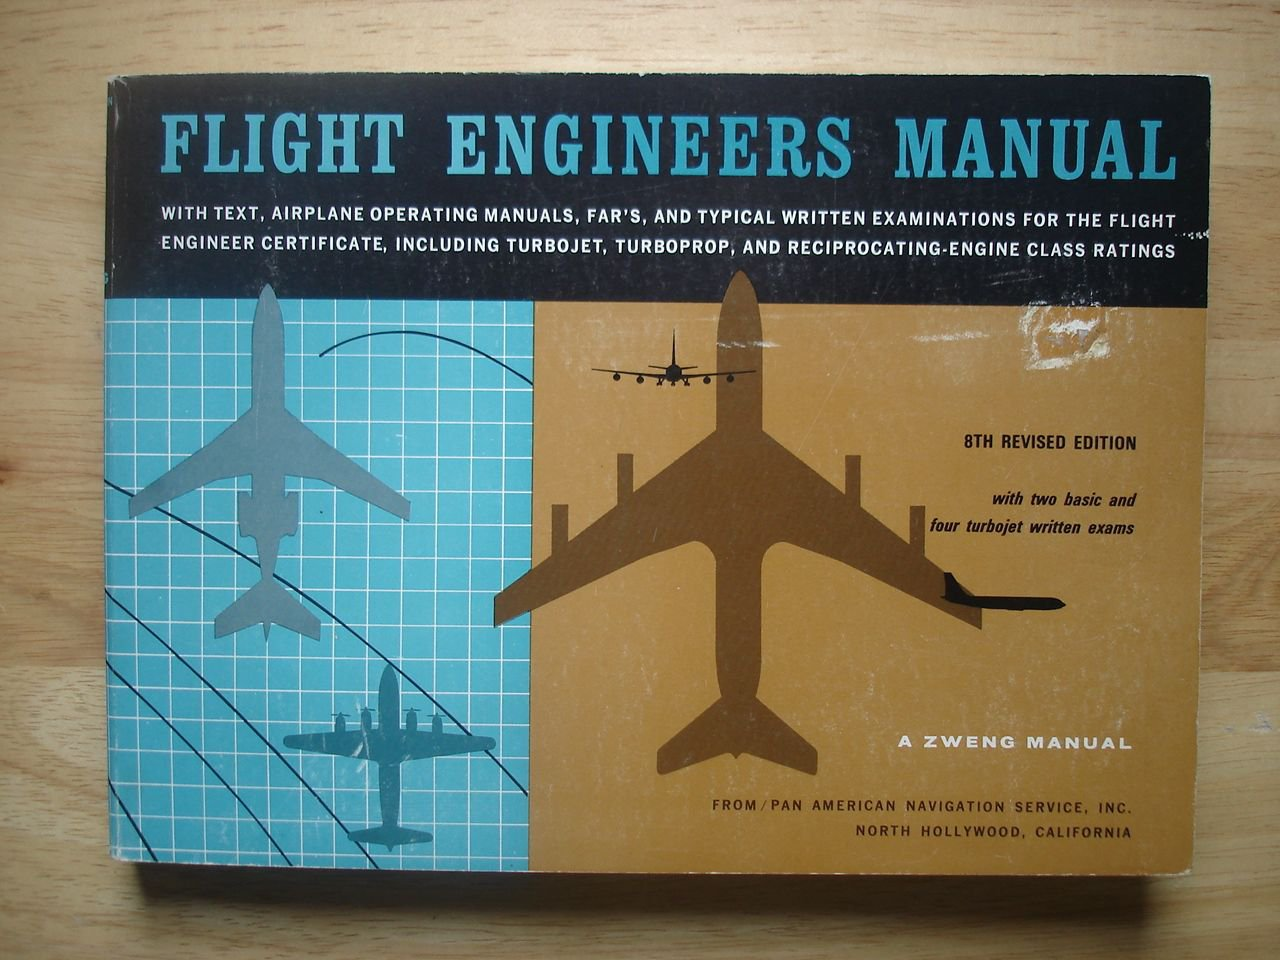 Flight Engineers Manual (A Zweng Manual / Pan American Navigation Service, Inc.)